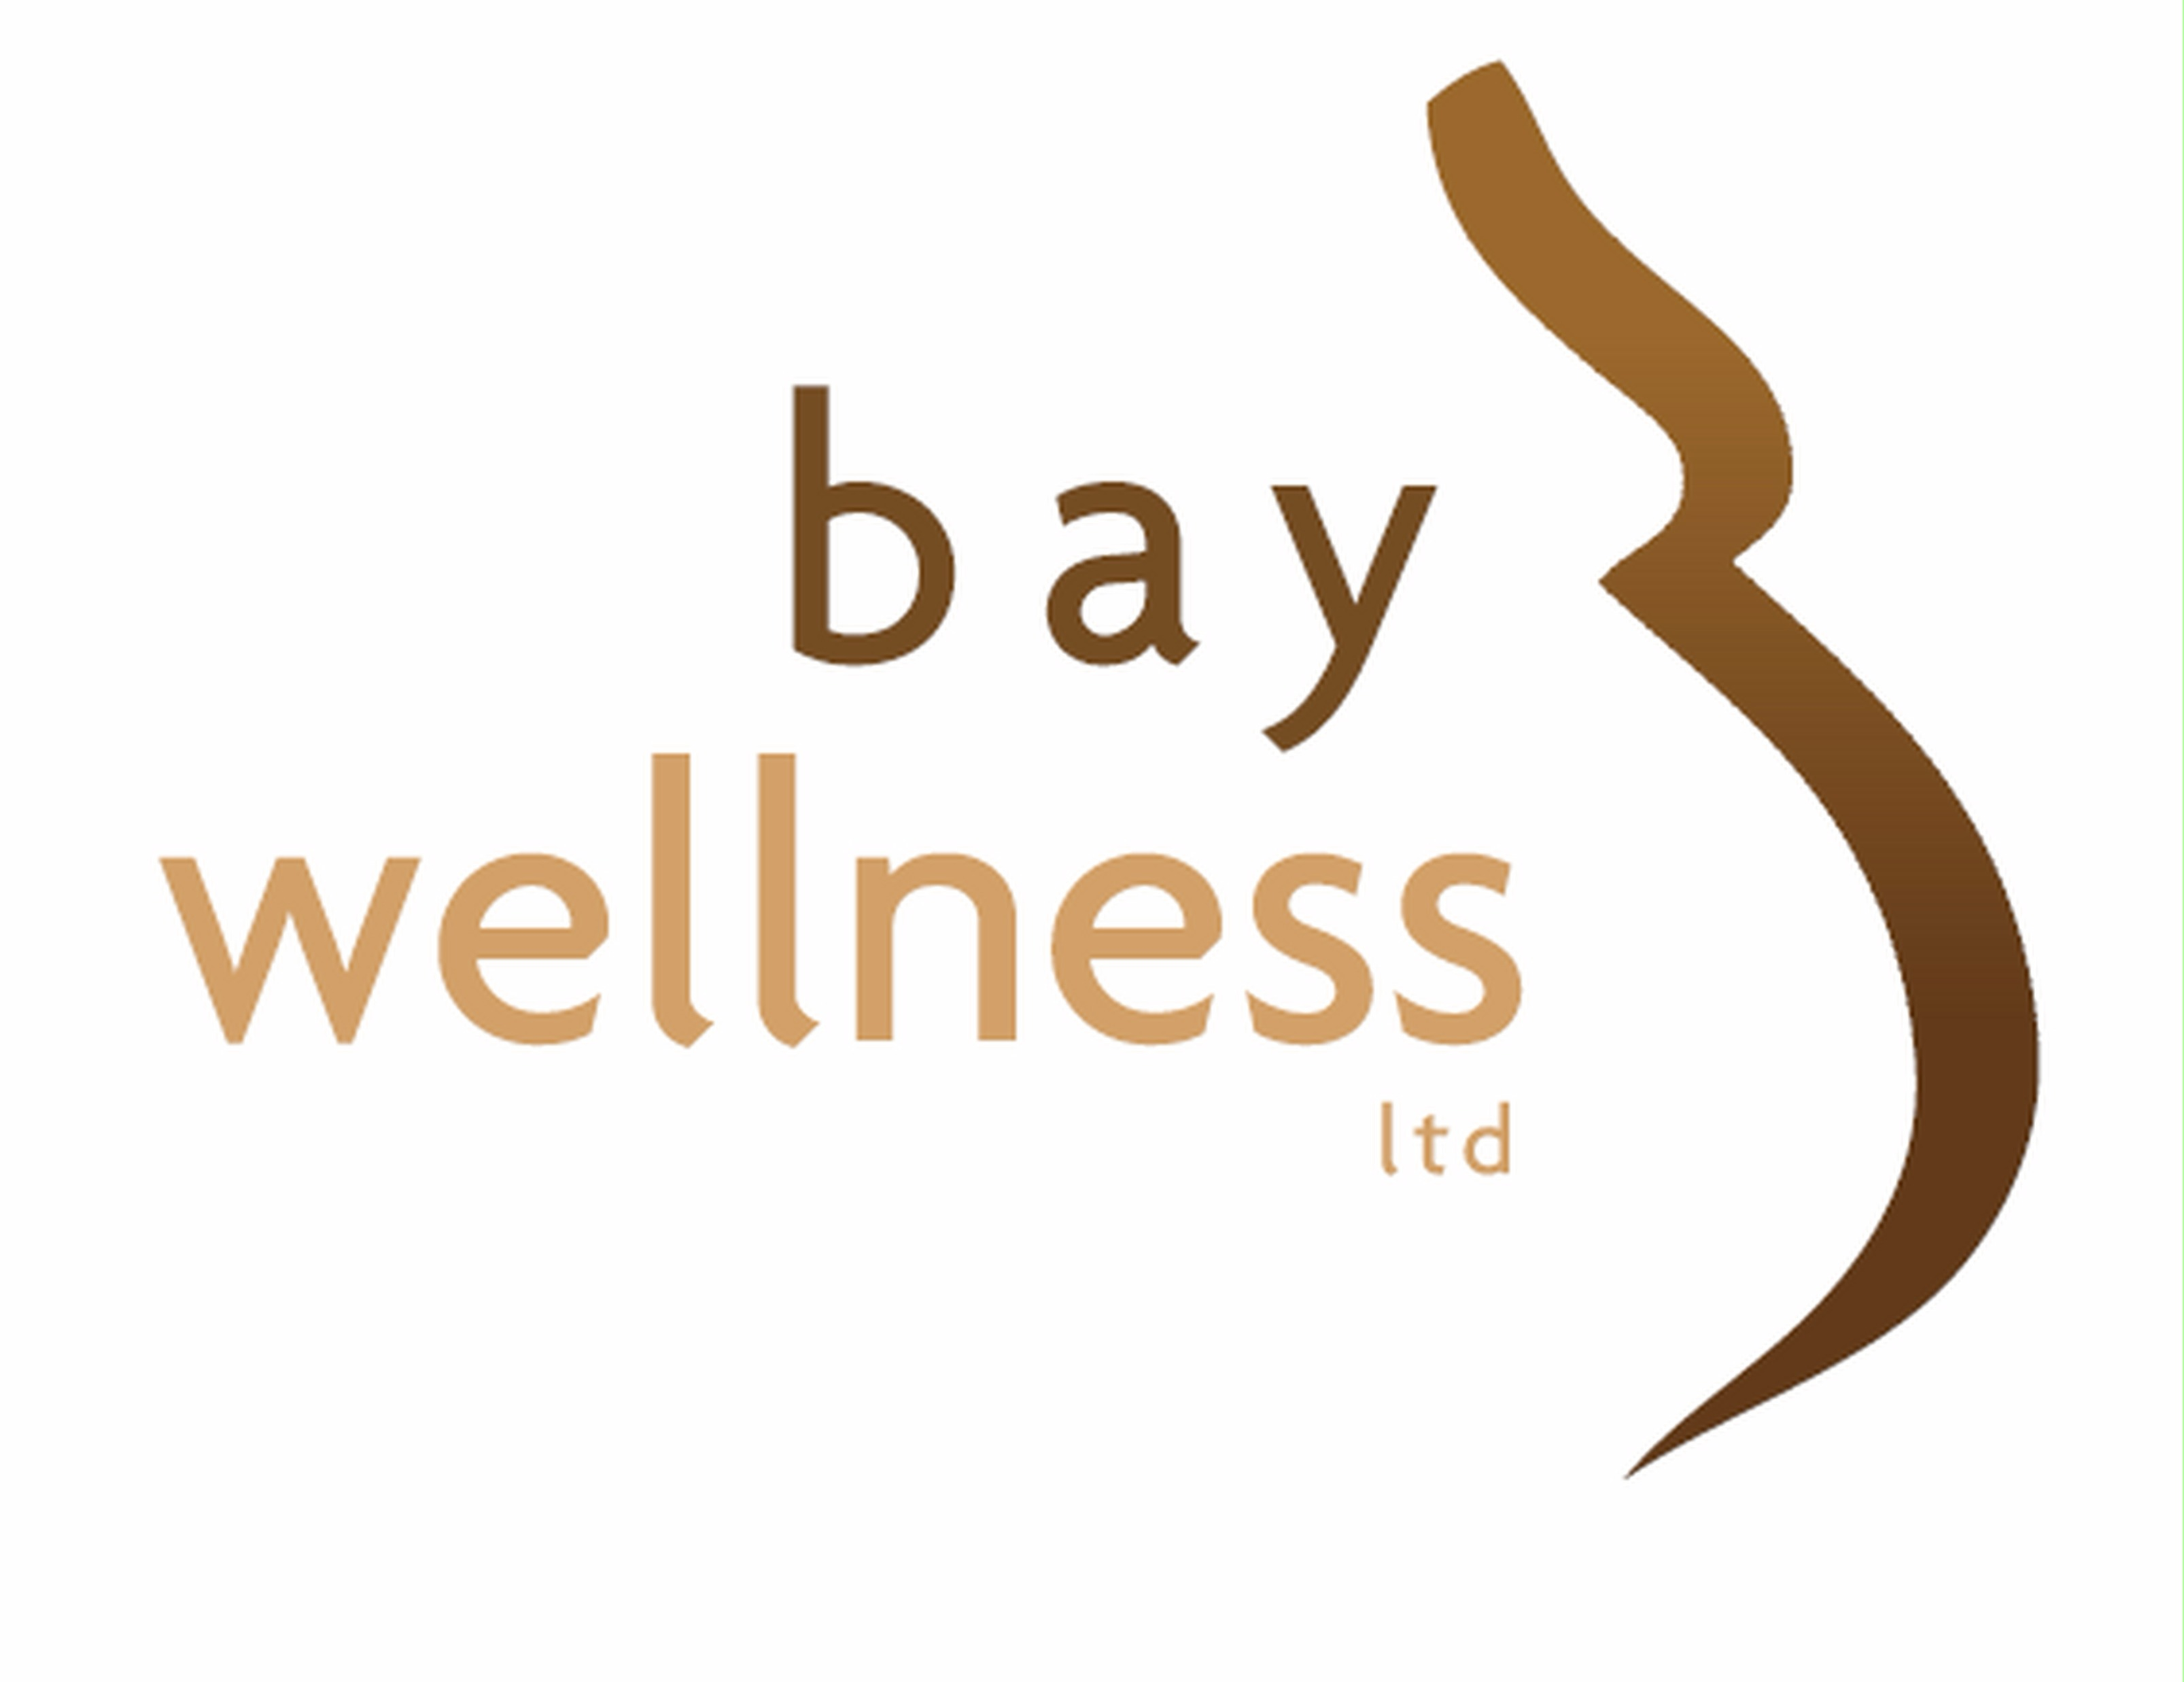 Bay Wellness